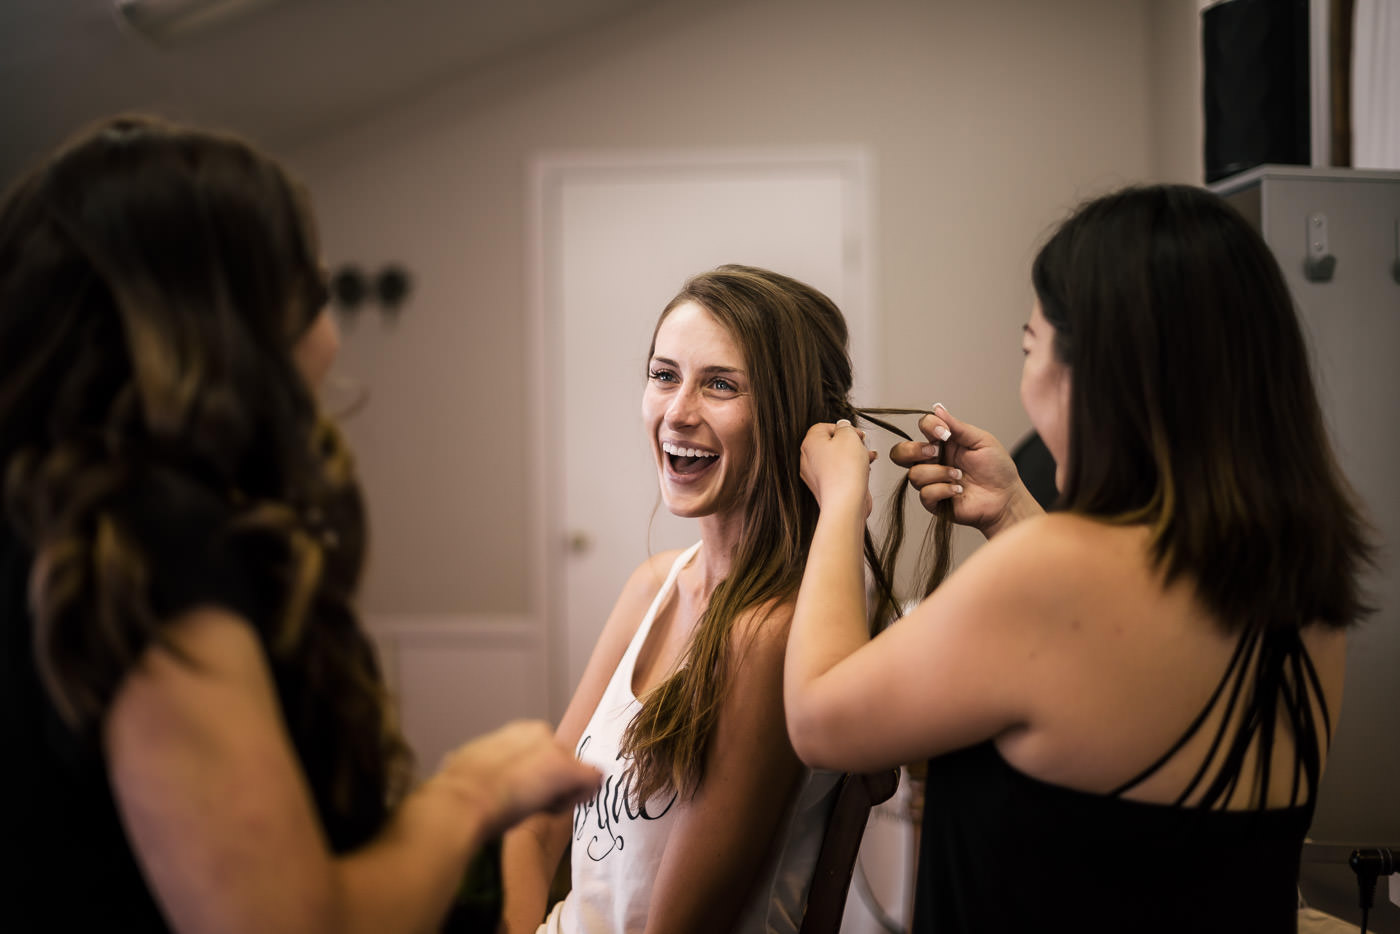 Hair and Makeup: - Do it yourself, or let a professional handle it. Keep in mind that you'll be looking at your elopement photos for the rest of your life. So make sure that you feel comfortable with your decision. What's important is that you feel like you.